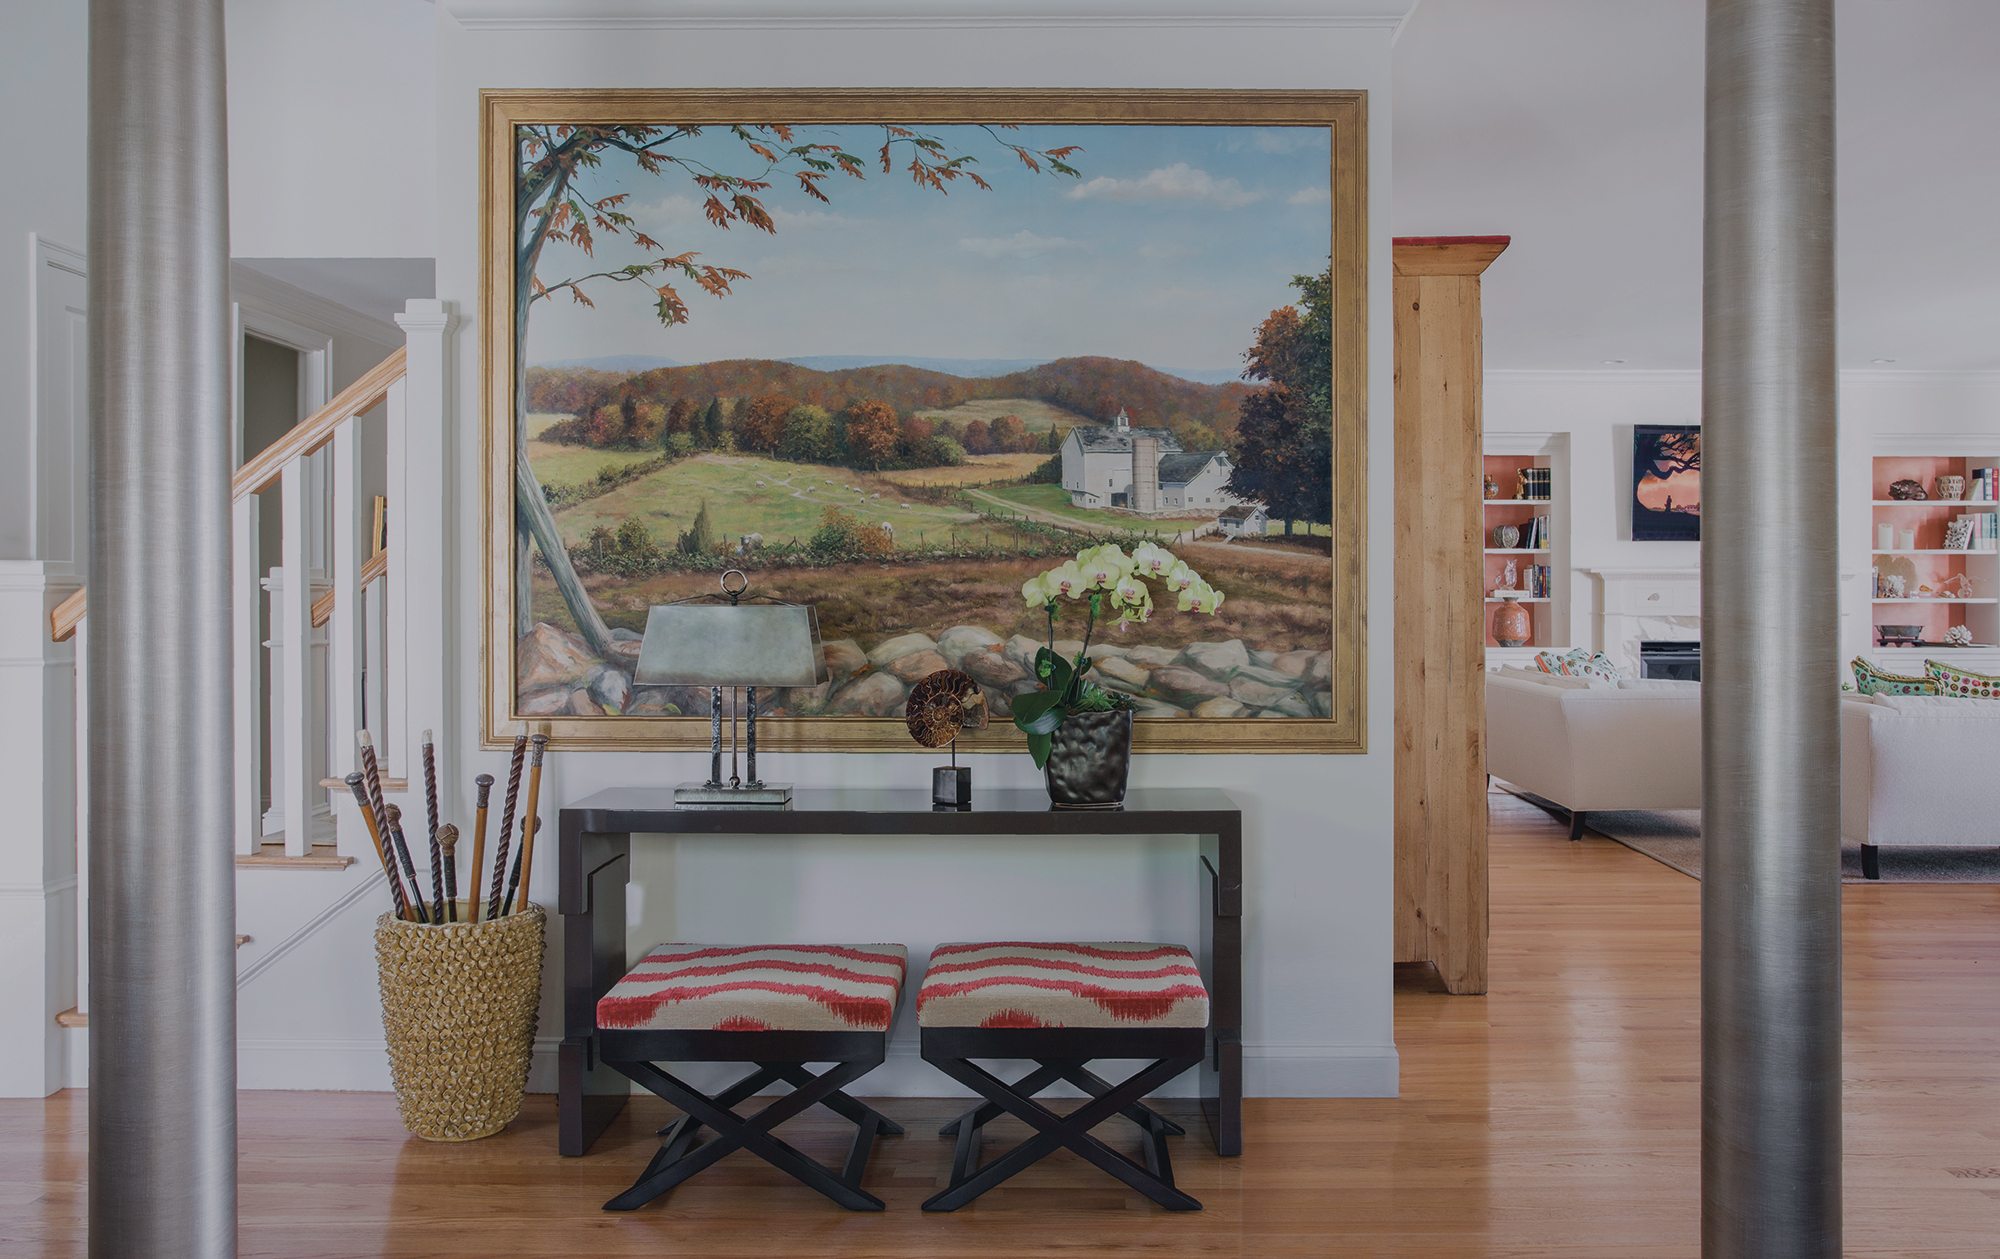 Home Life By Rose Ann Humphrey Interior Design Firm In Boston